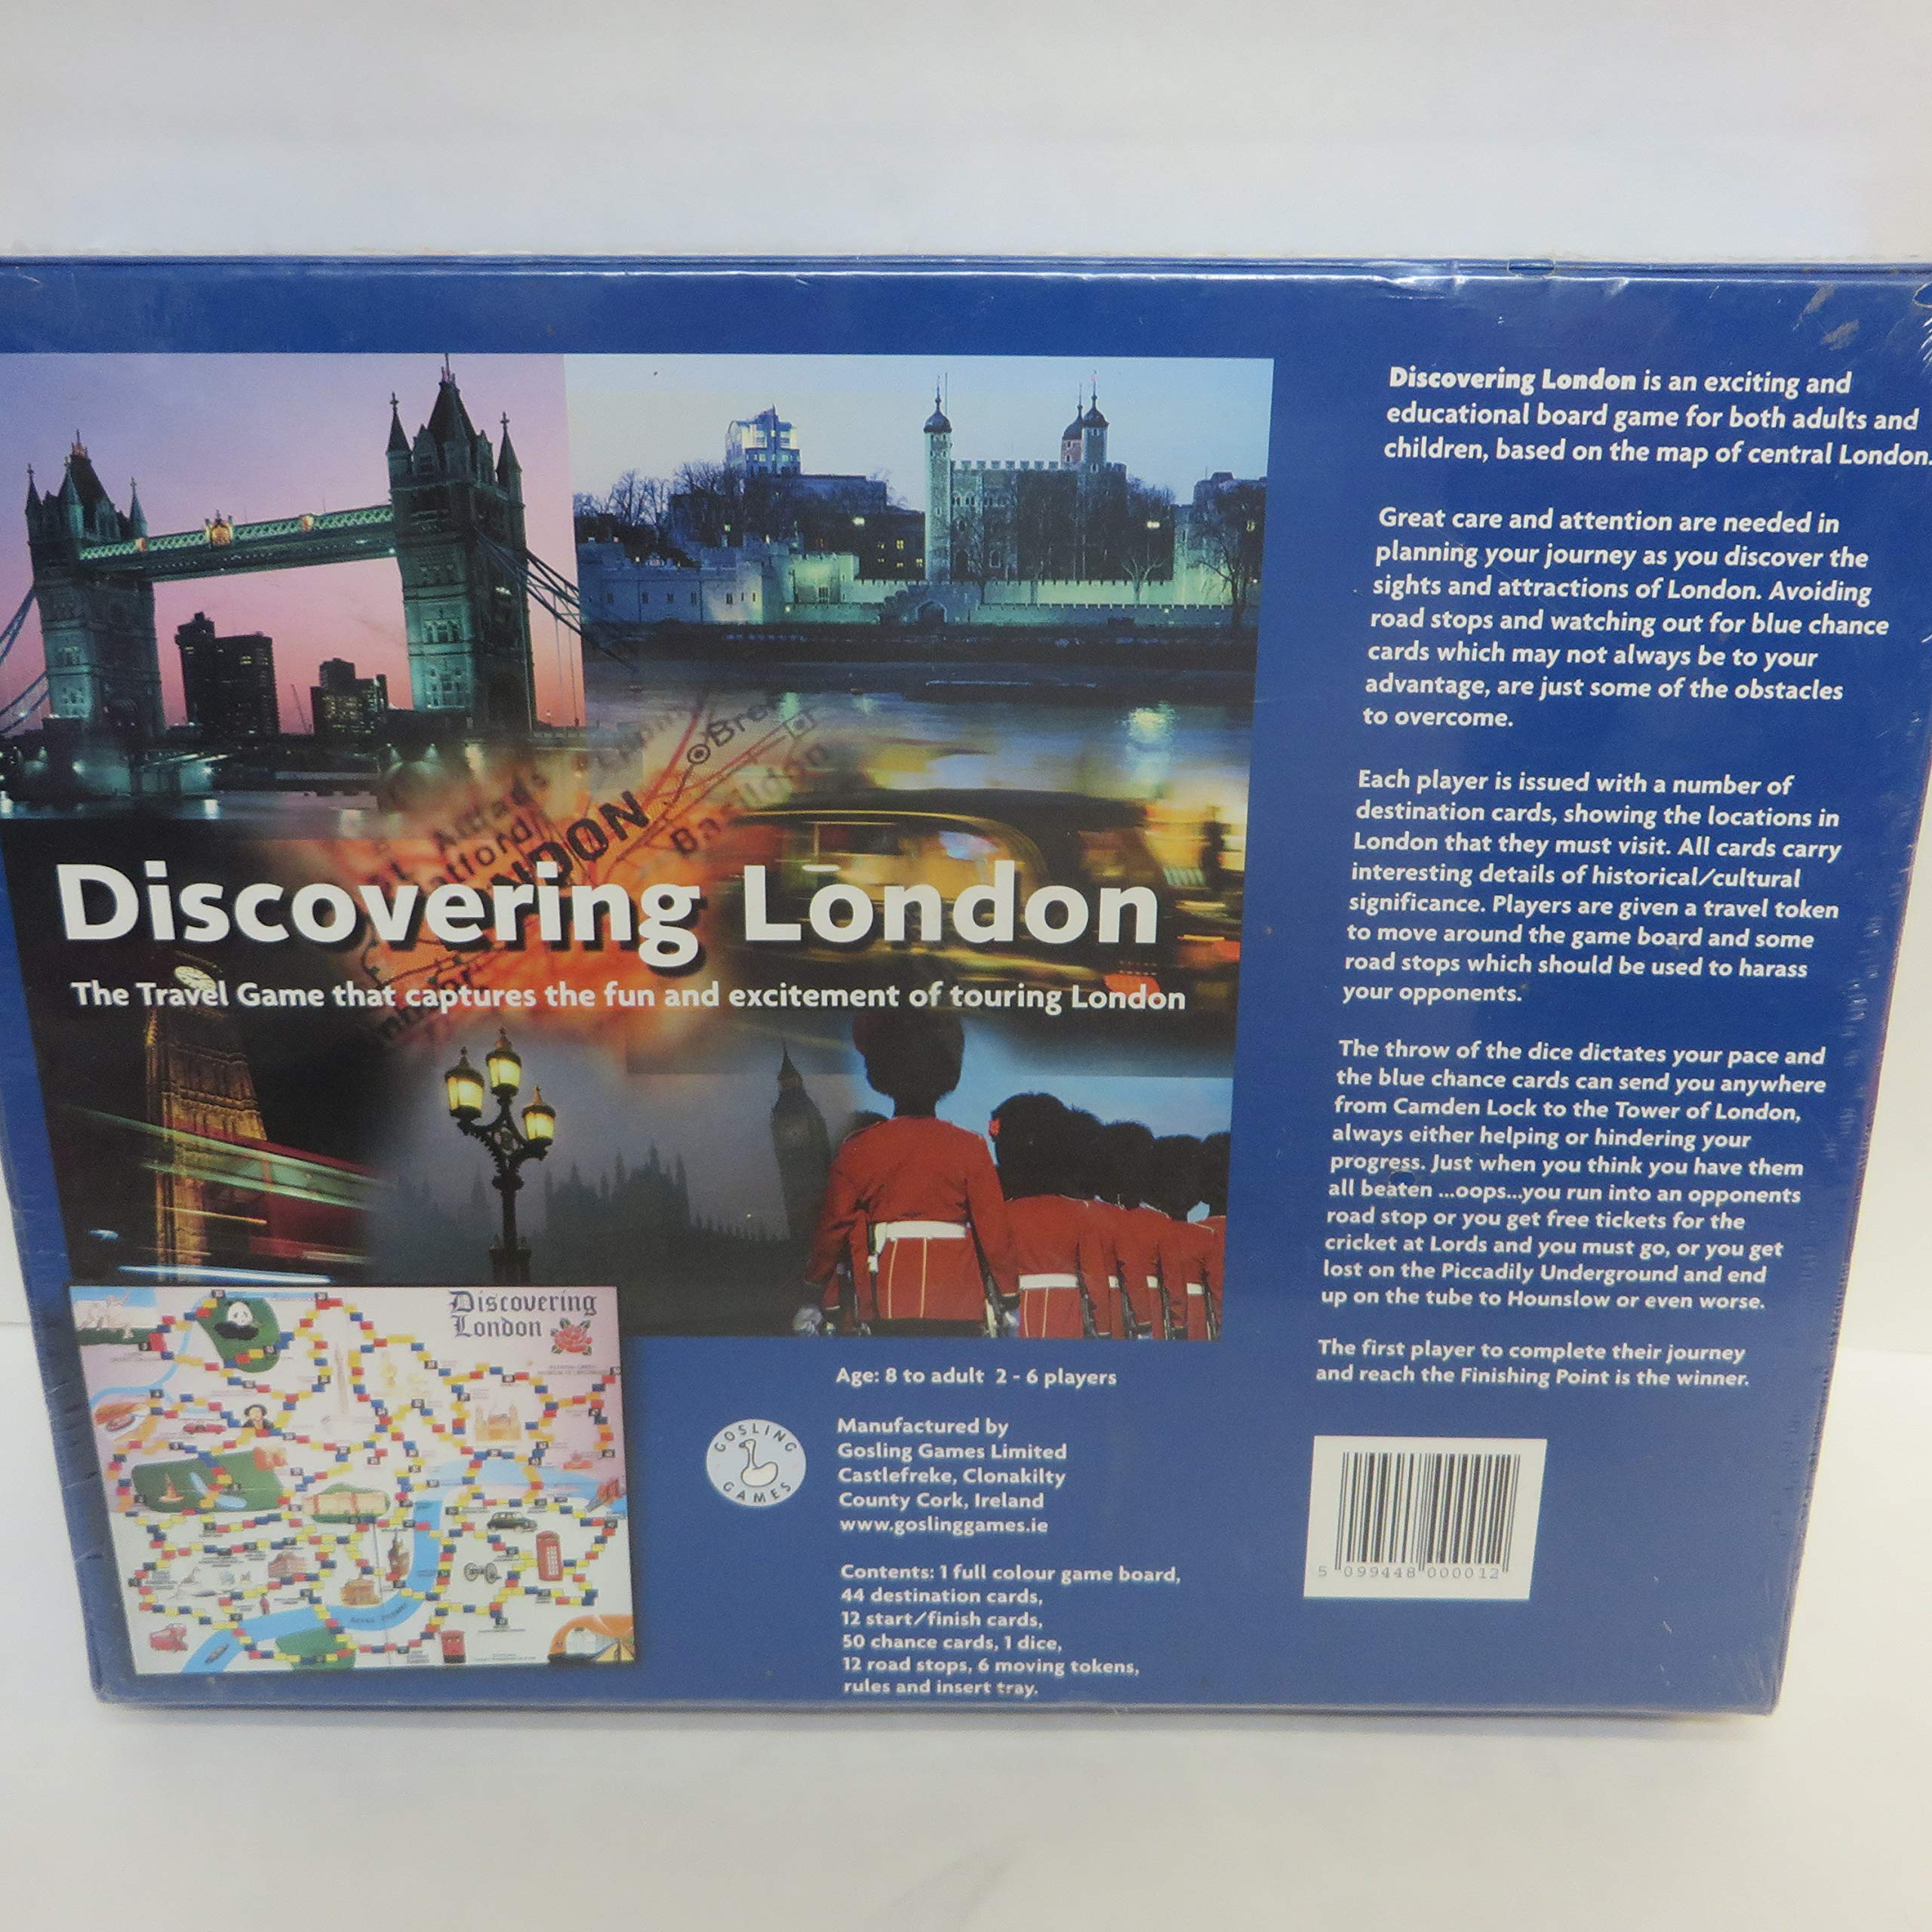 Discovering London: The Travel Game that Captures the Fun and Excitement of Touring London by Gosling Games Ltd. (Image #2)